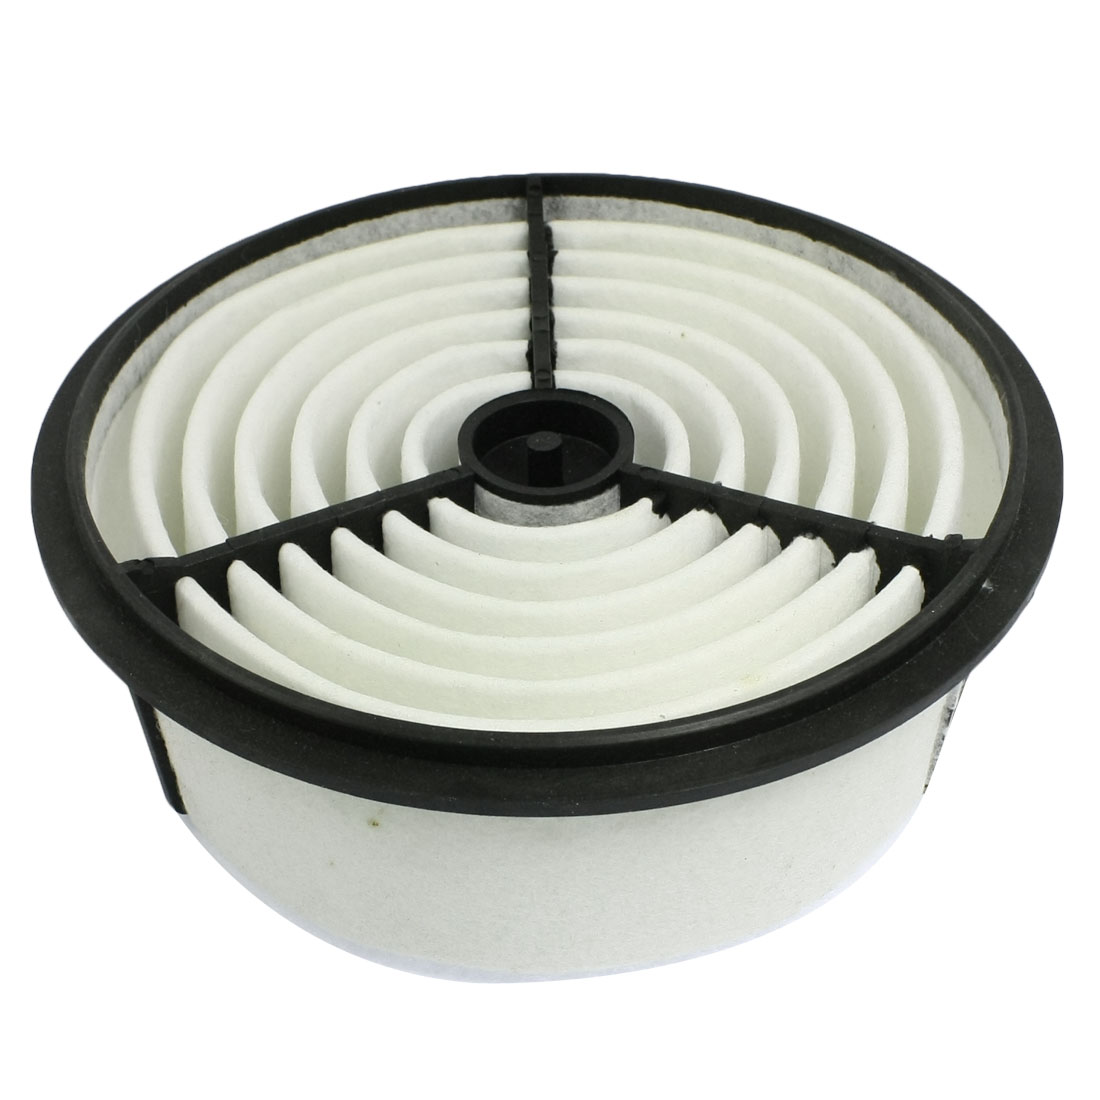 Car Auto Parts Air Filter Black White for Toyota Corolla